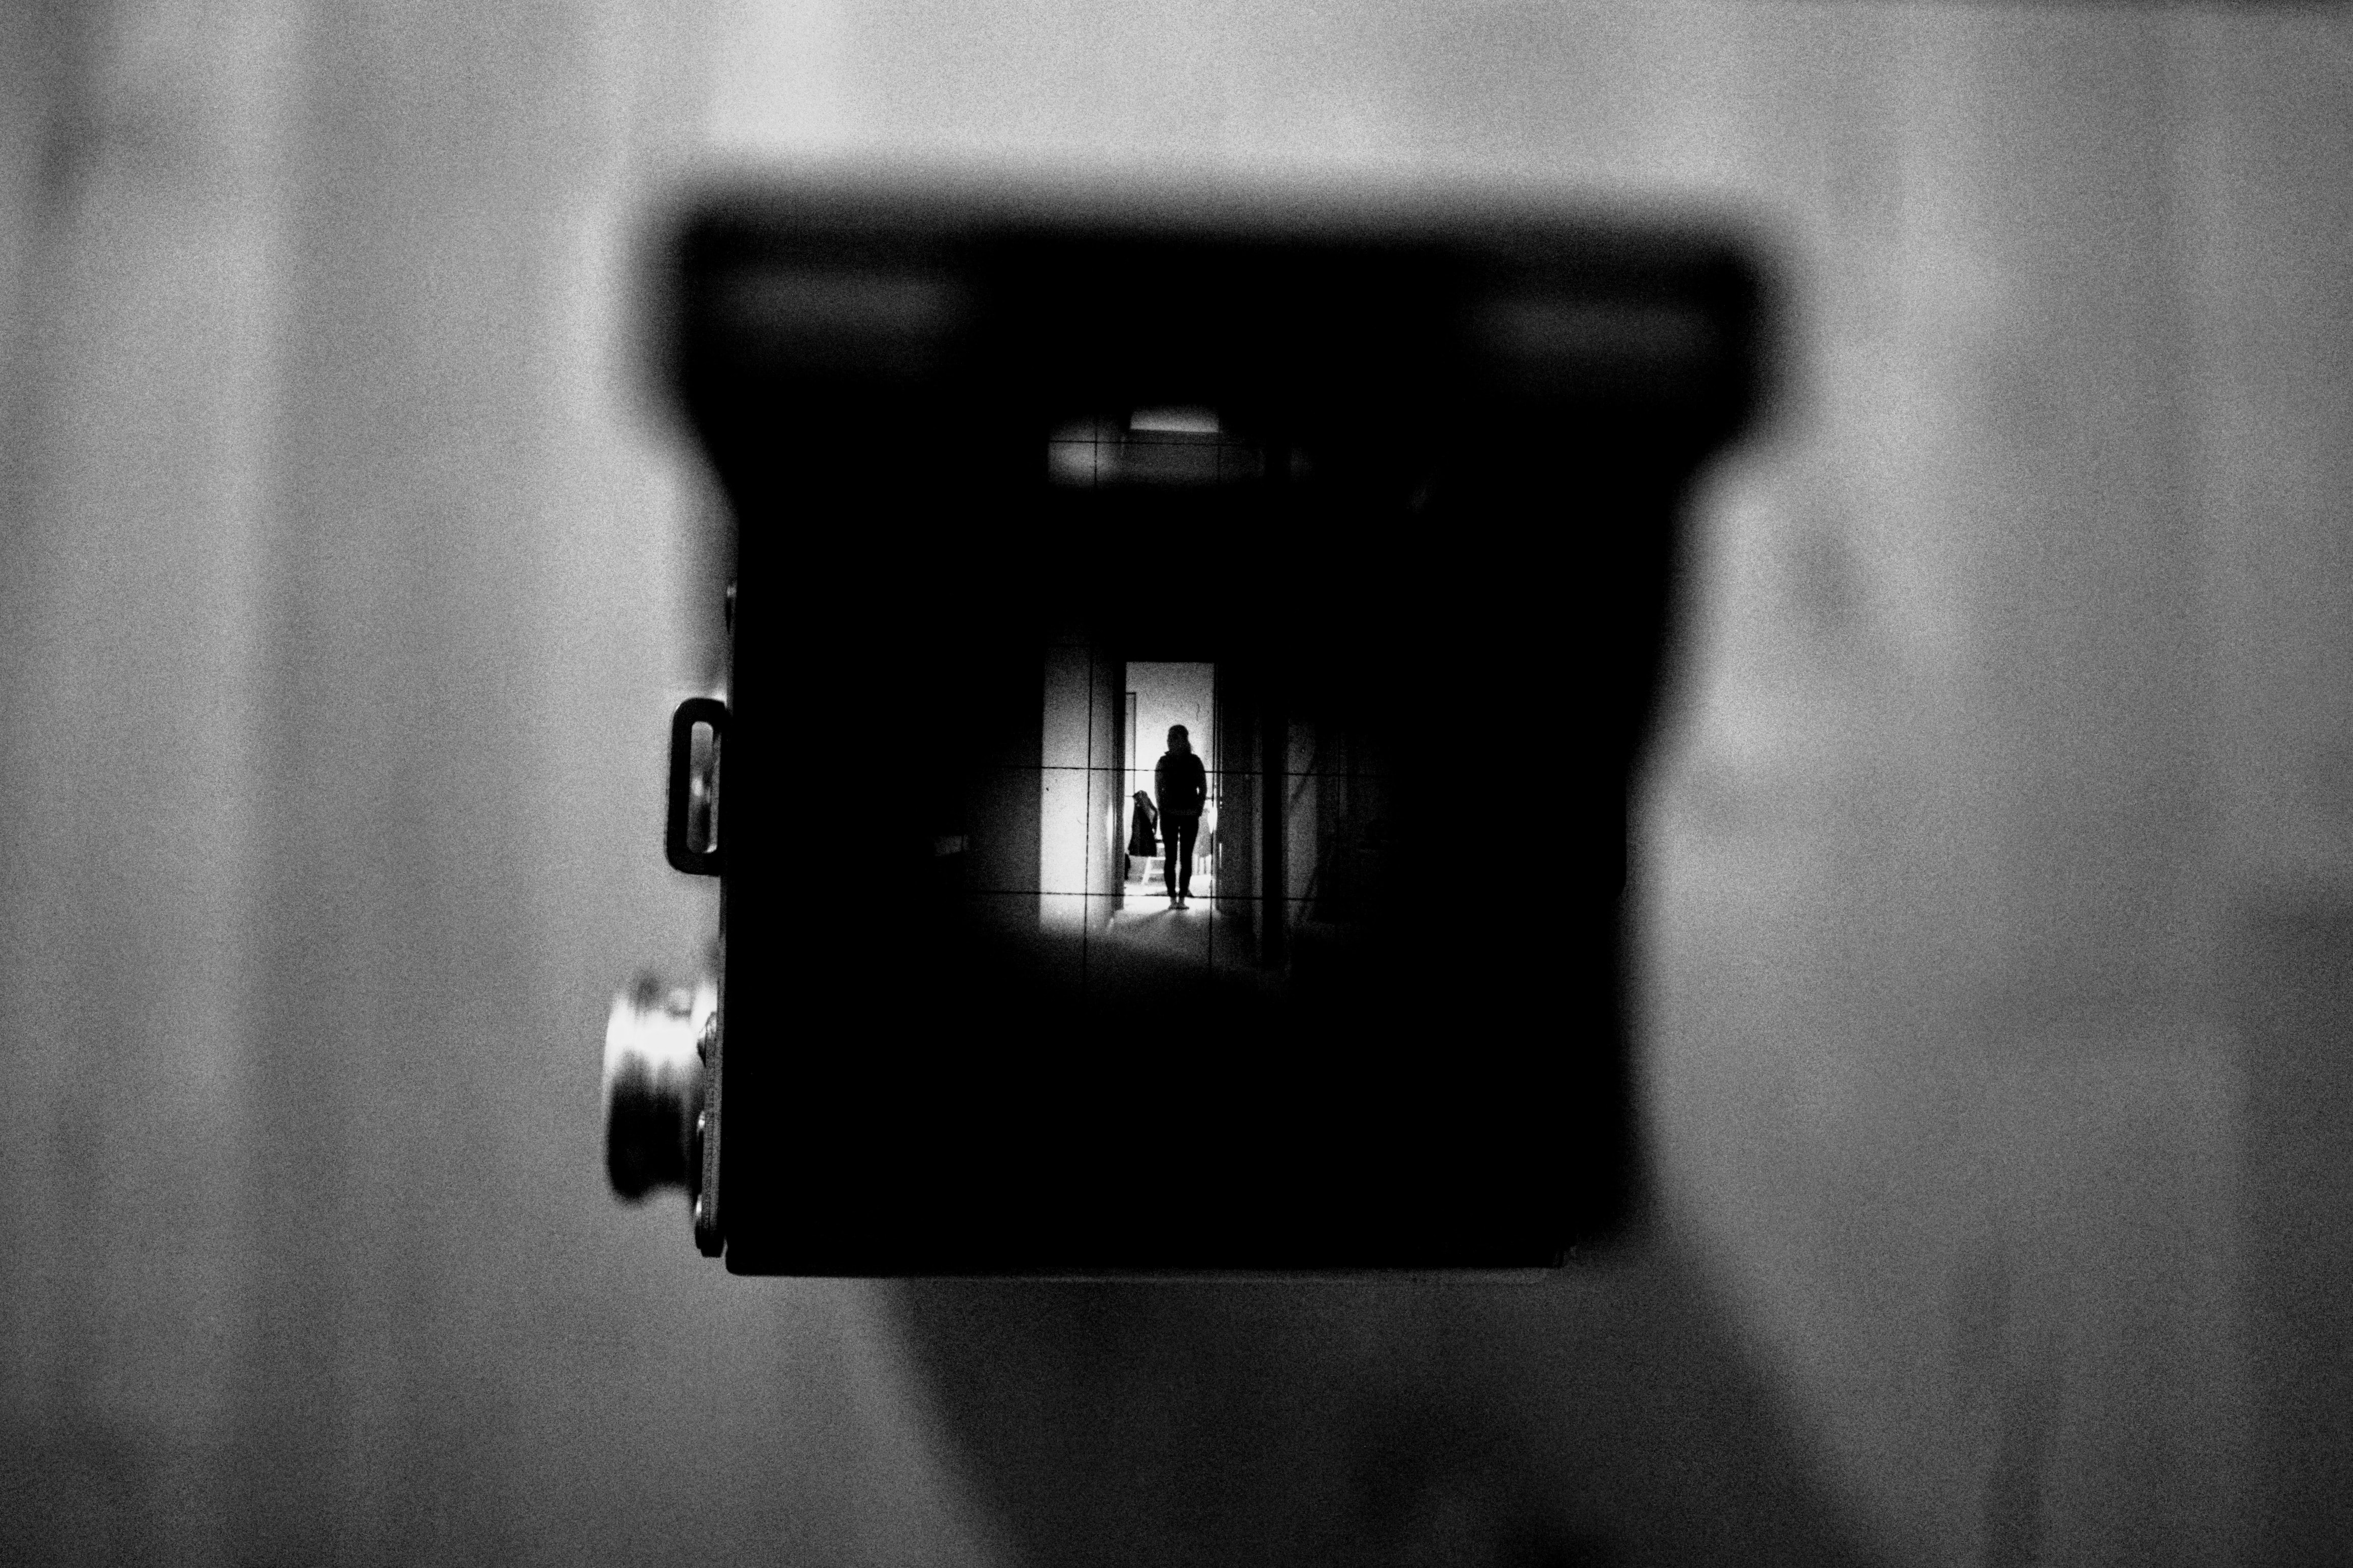 Black and white shot of person in distance through vintage camera viewfinder, Willoughby